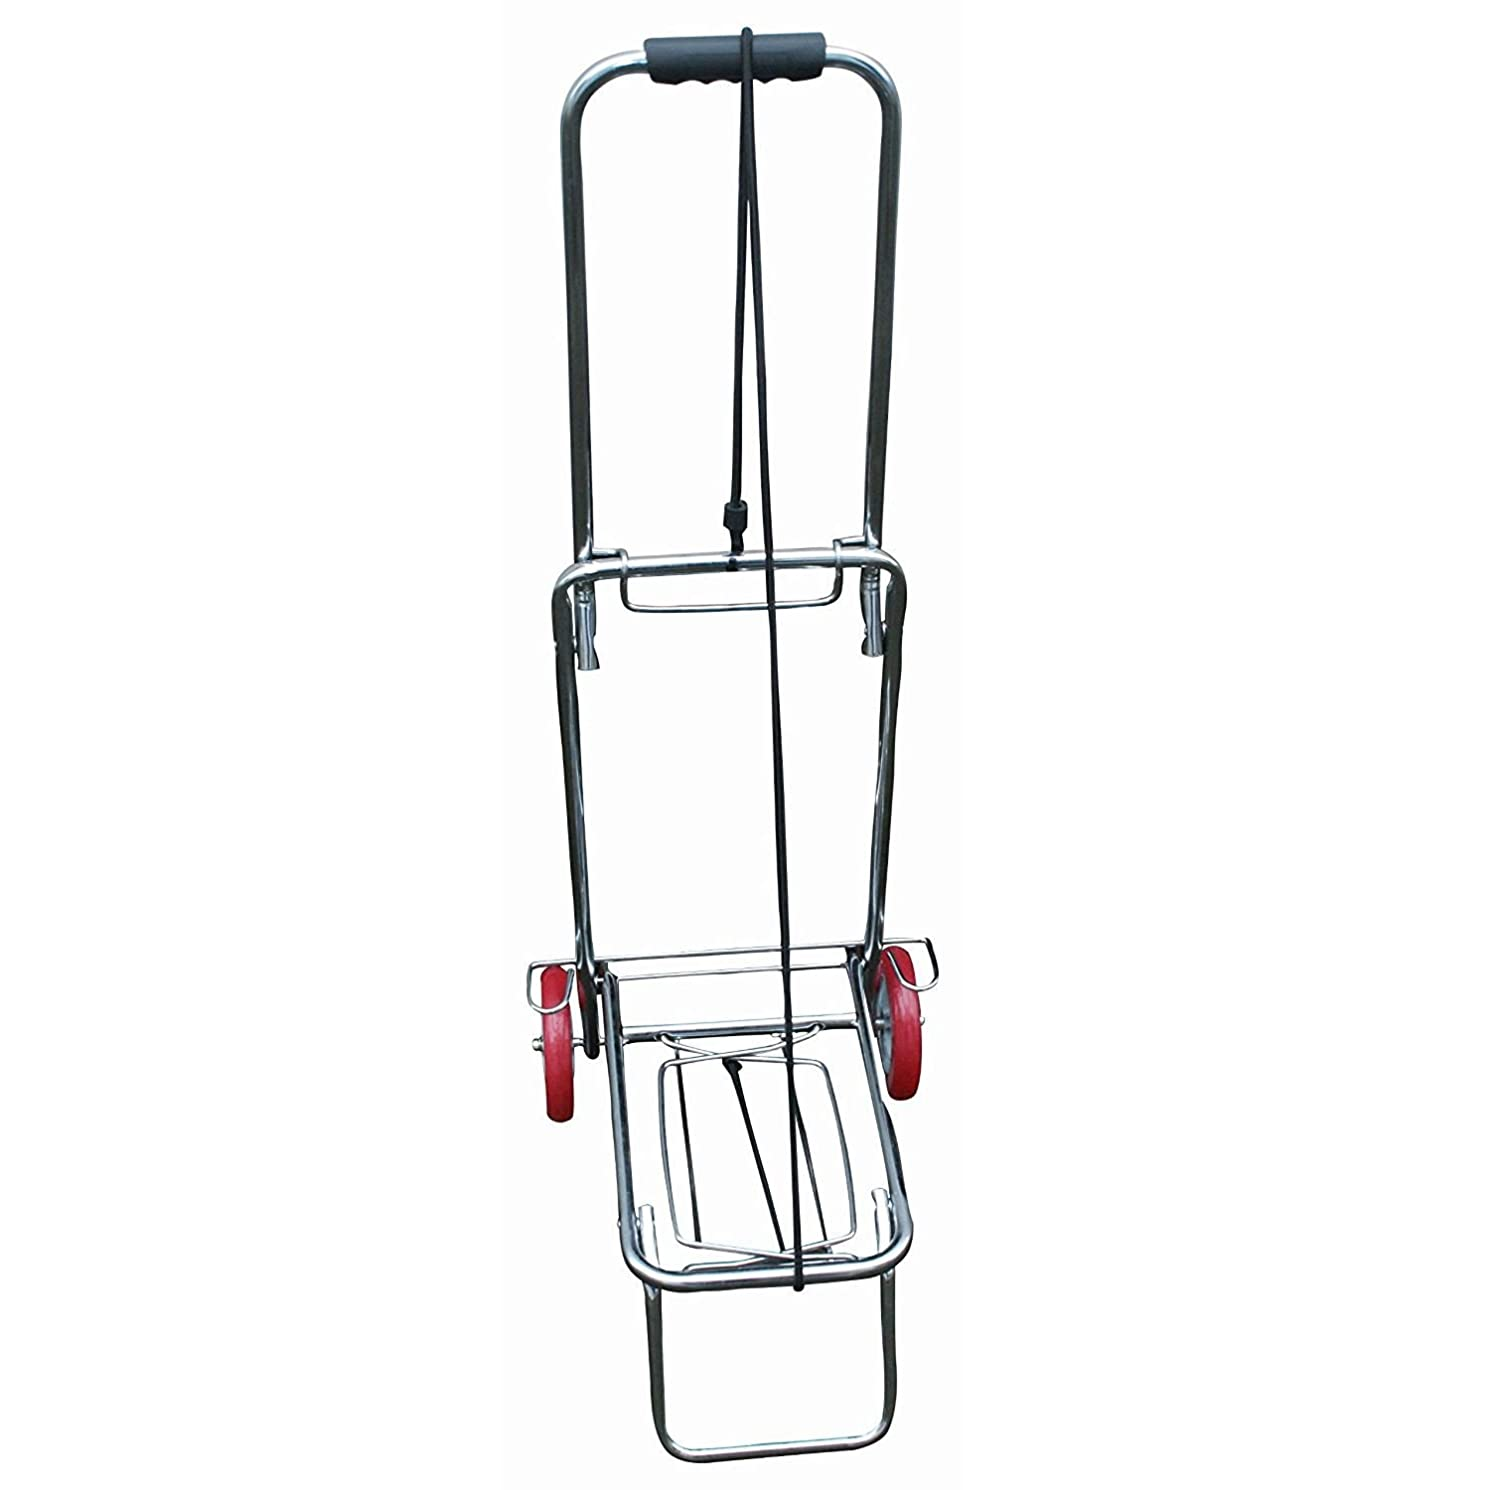 TROLLEY FOLDING SACK TRUCK LUGGAGE SUITCASE CAMPING FESTIVAL WAREHOUSE CART PDL